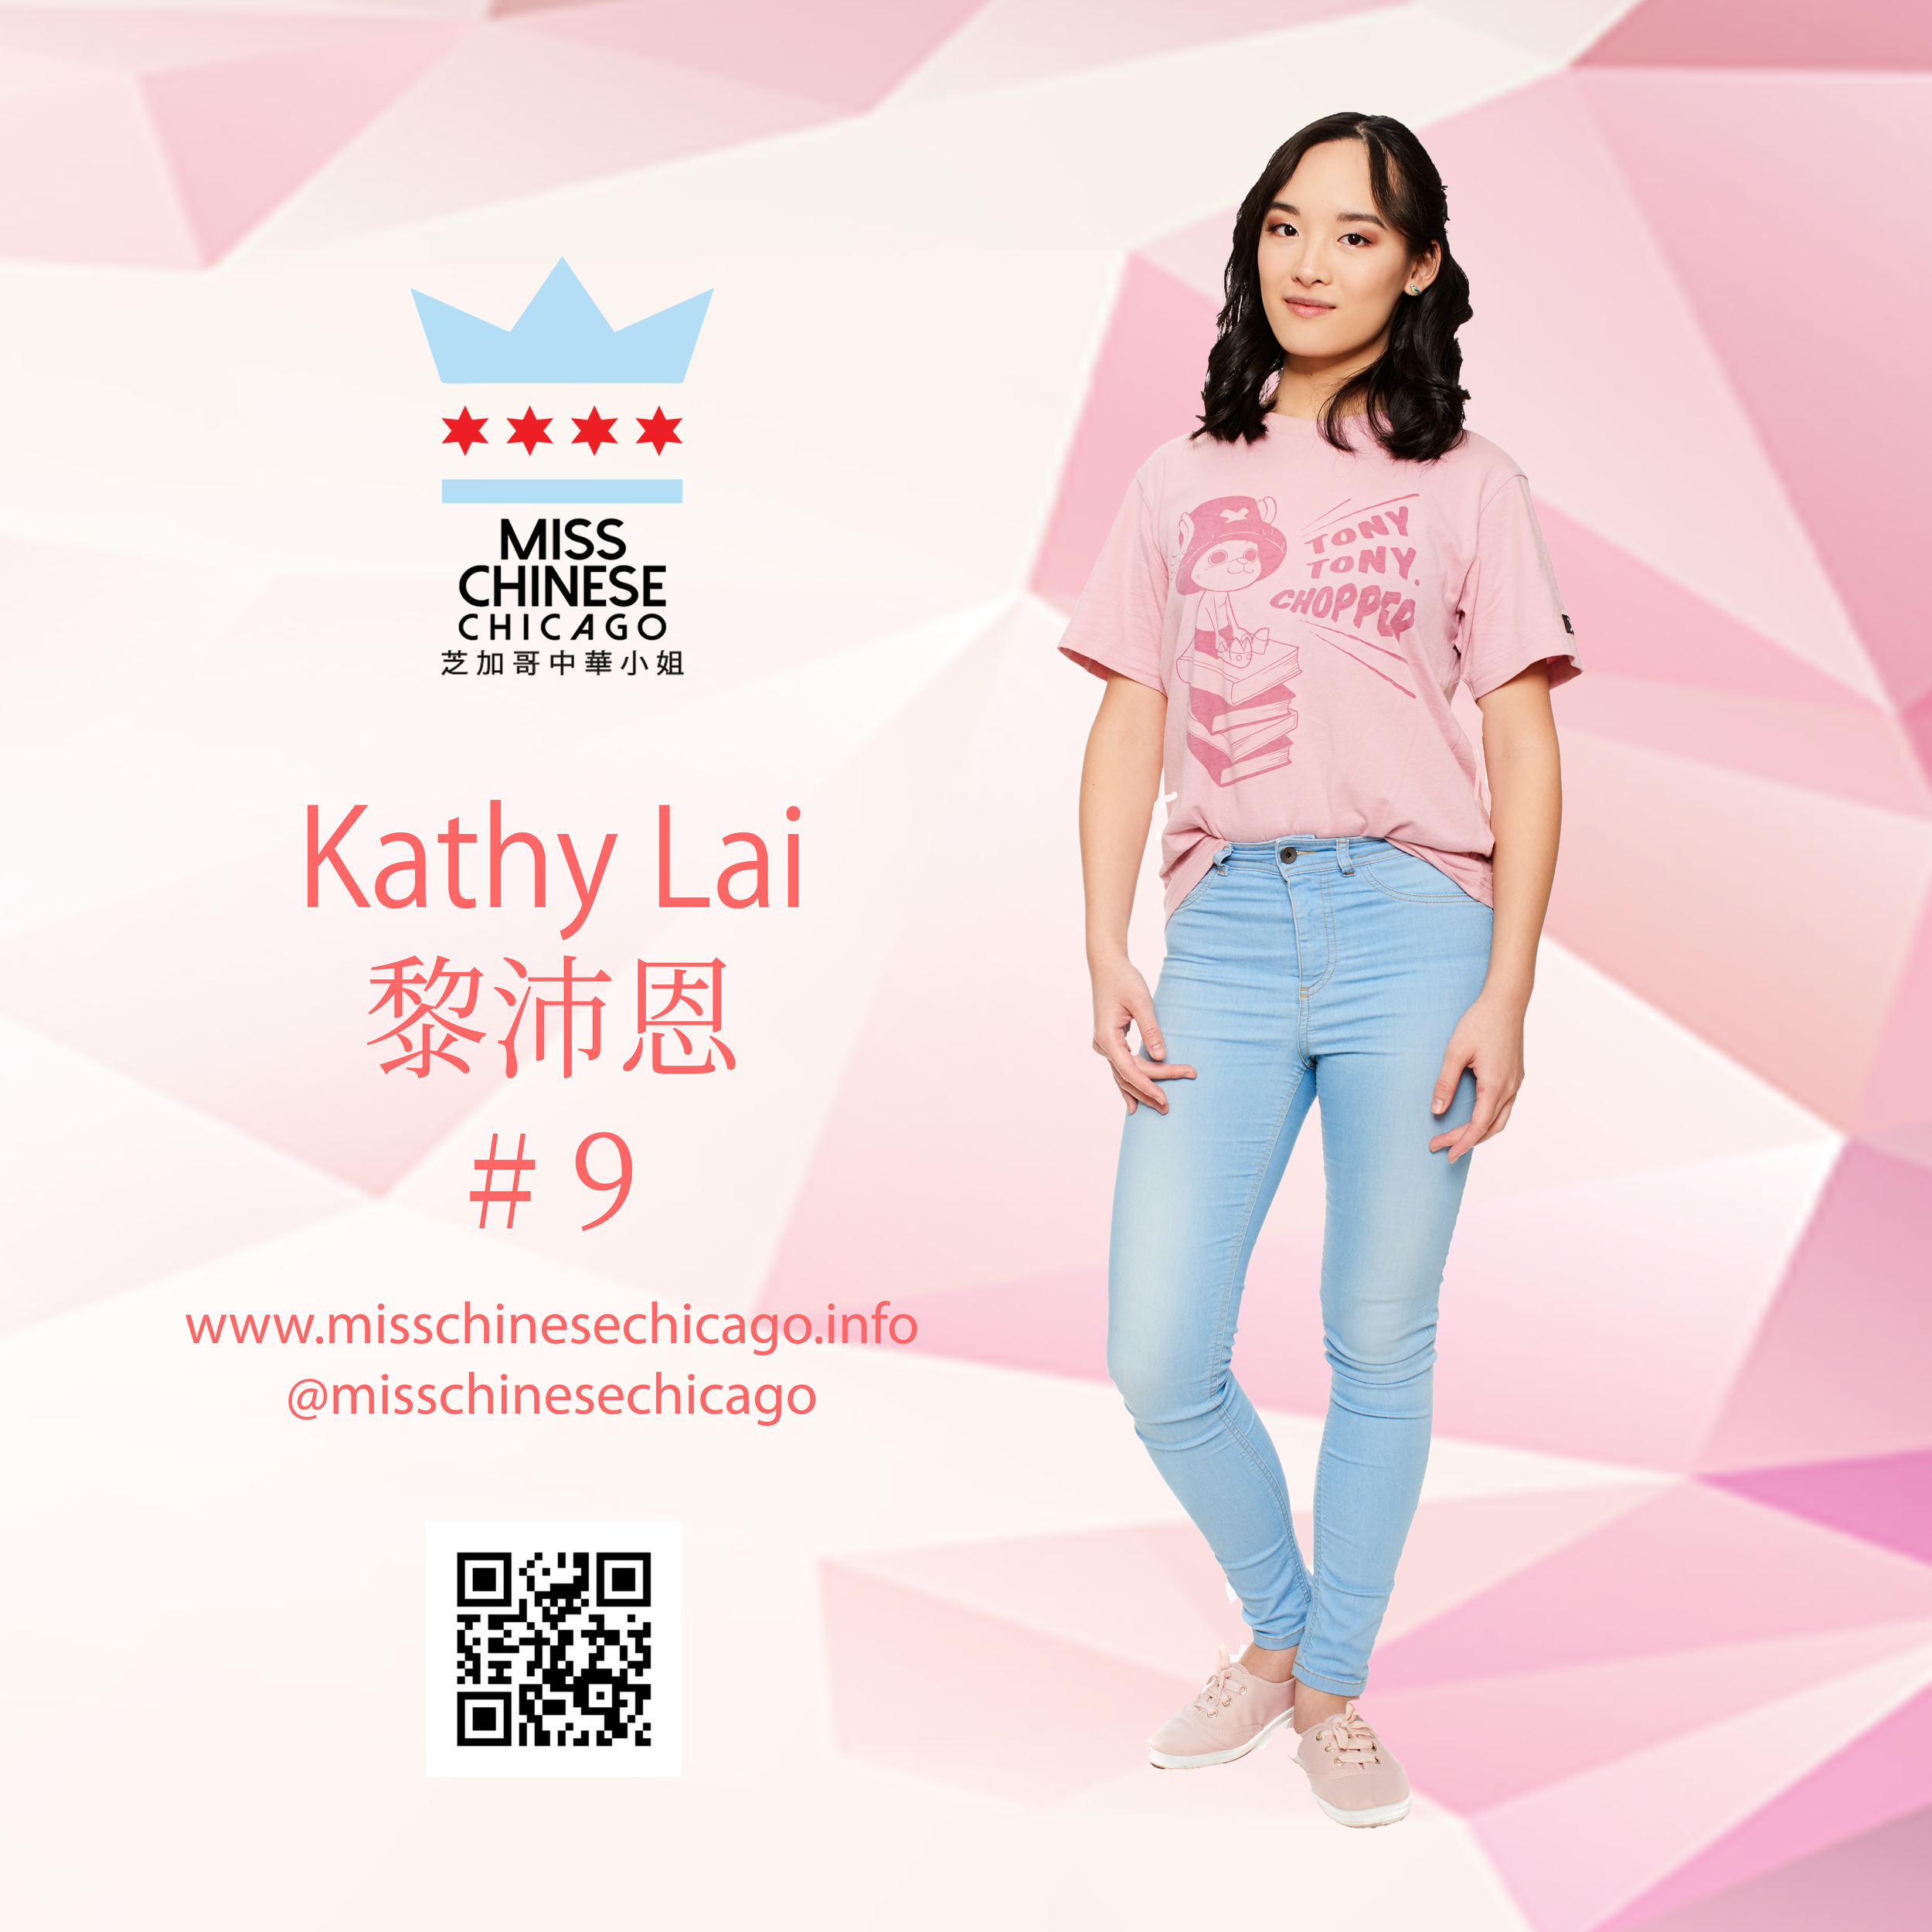 Kathy_Lai_Personality_IG.png